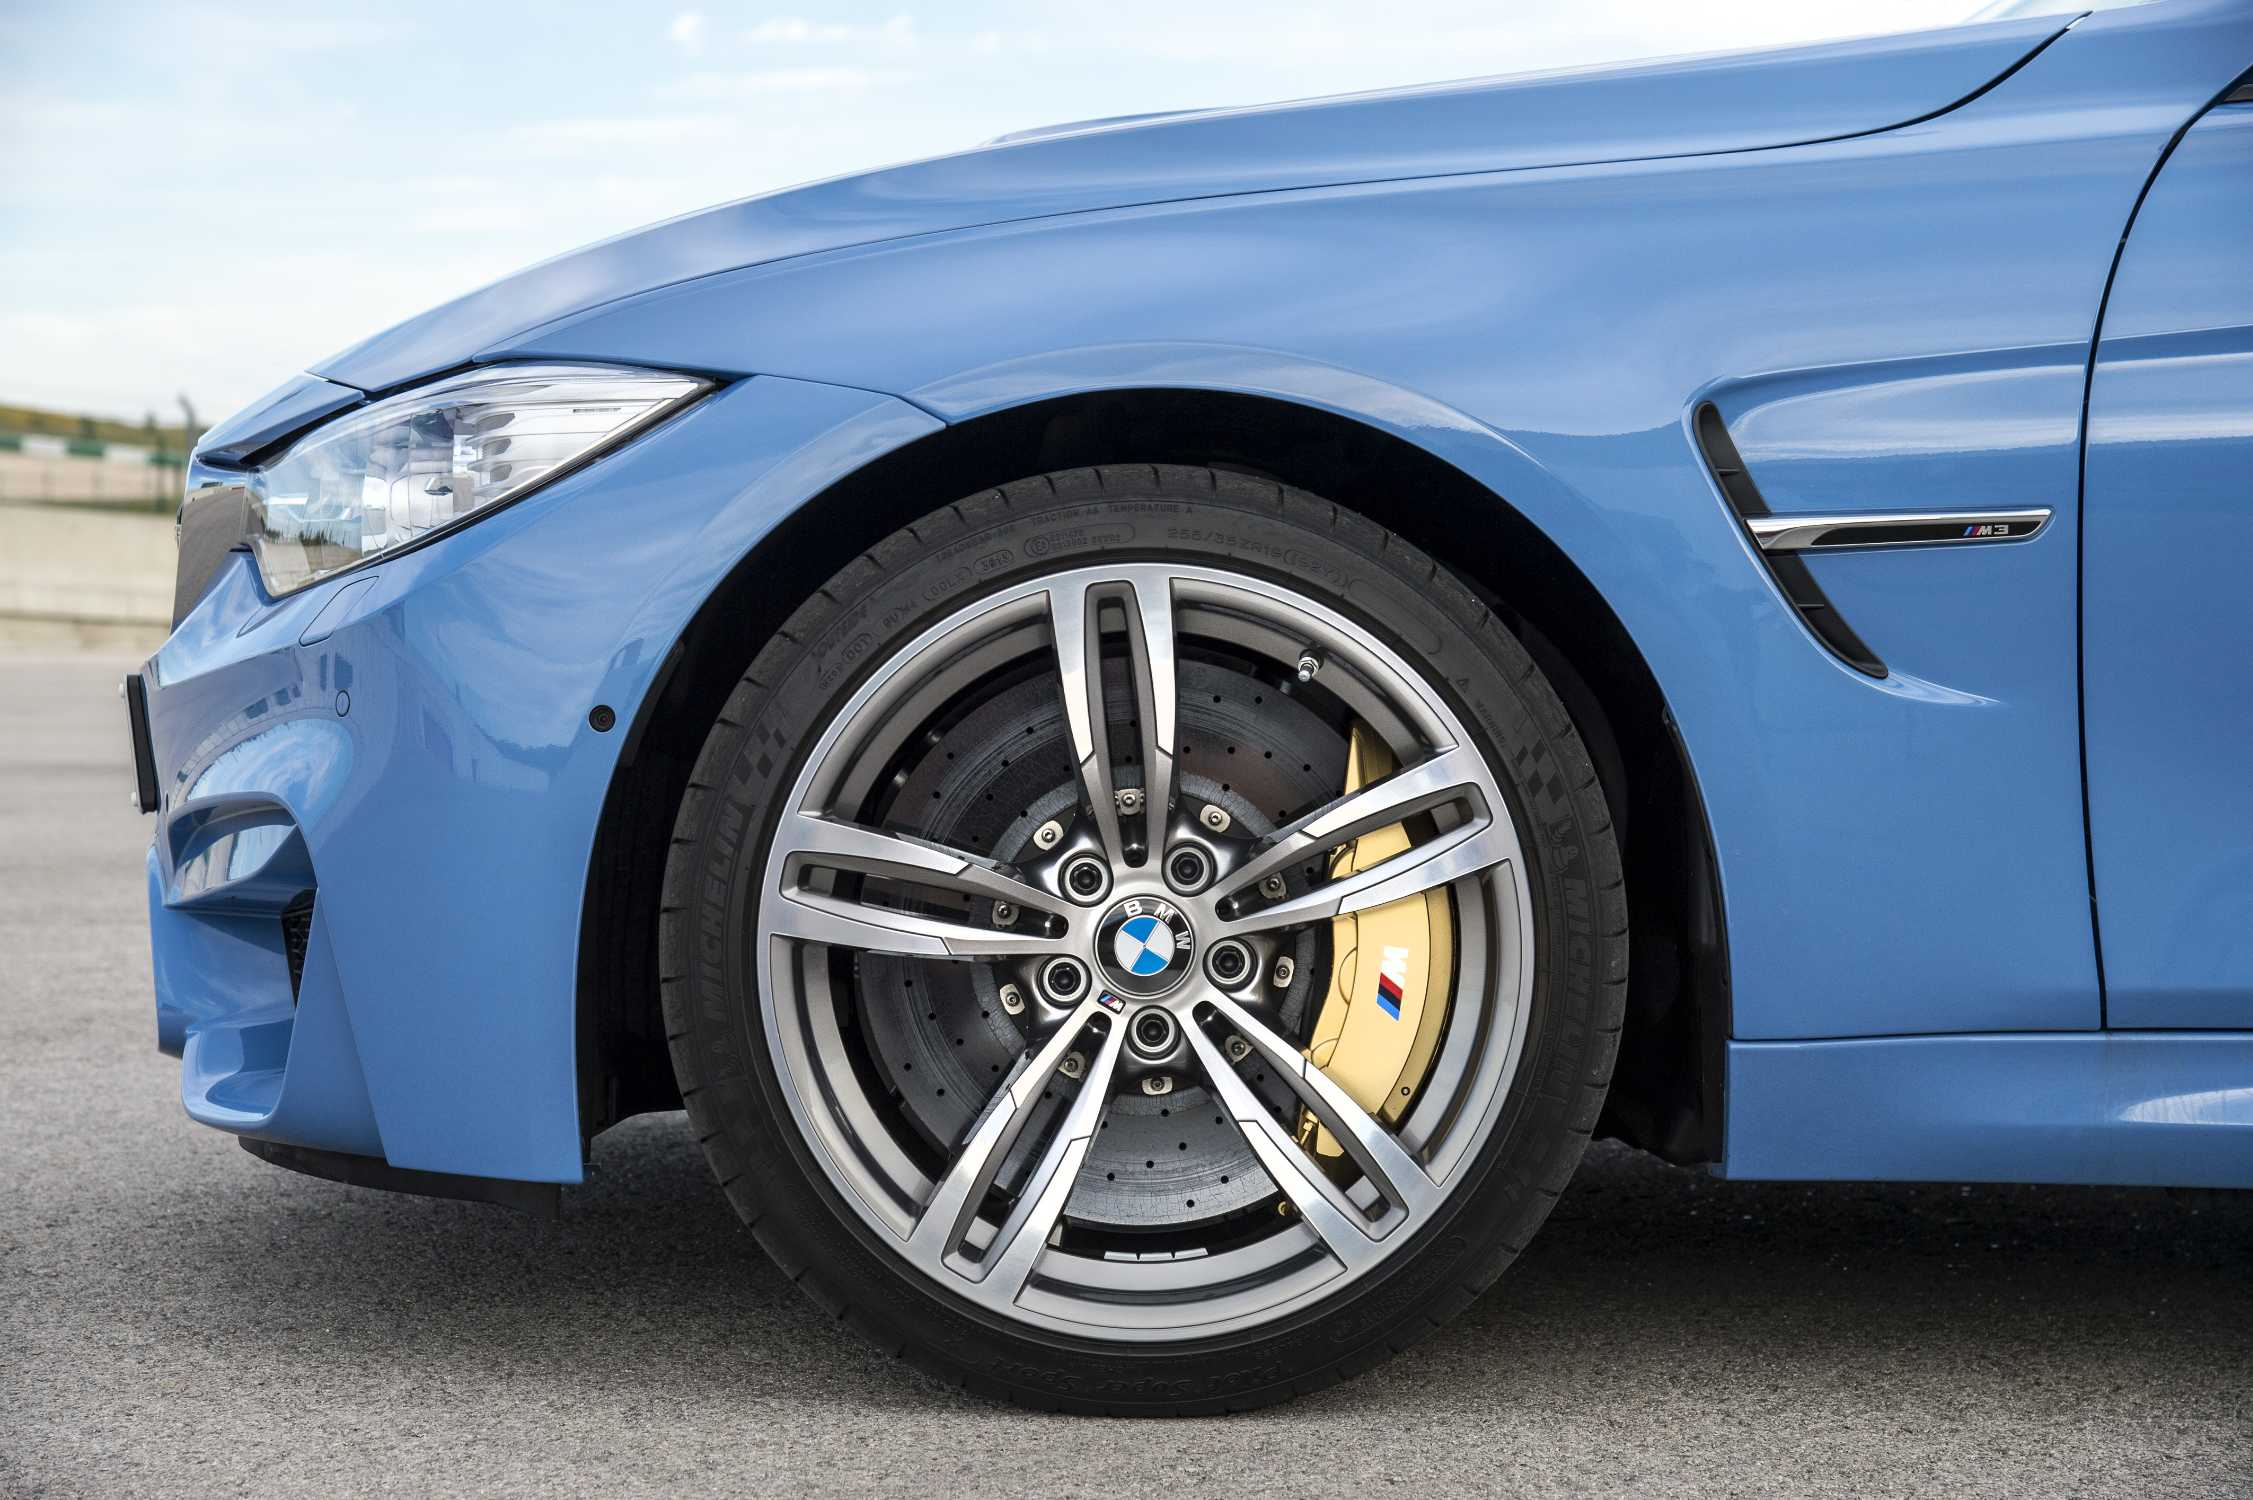 The new BMW M3 Limousine with 19 Light Alloy Wheel Double